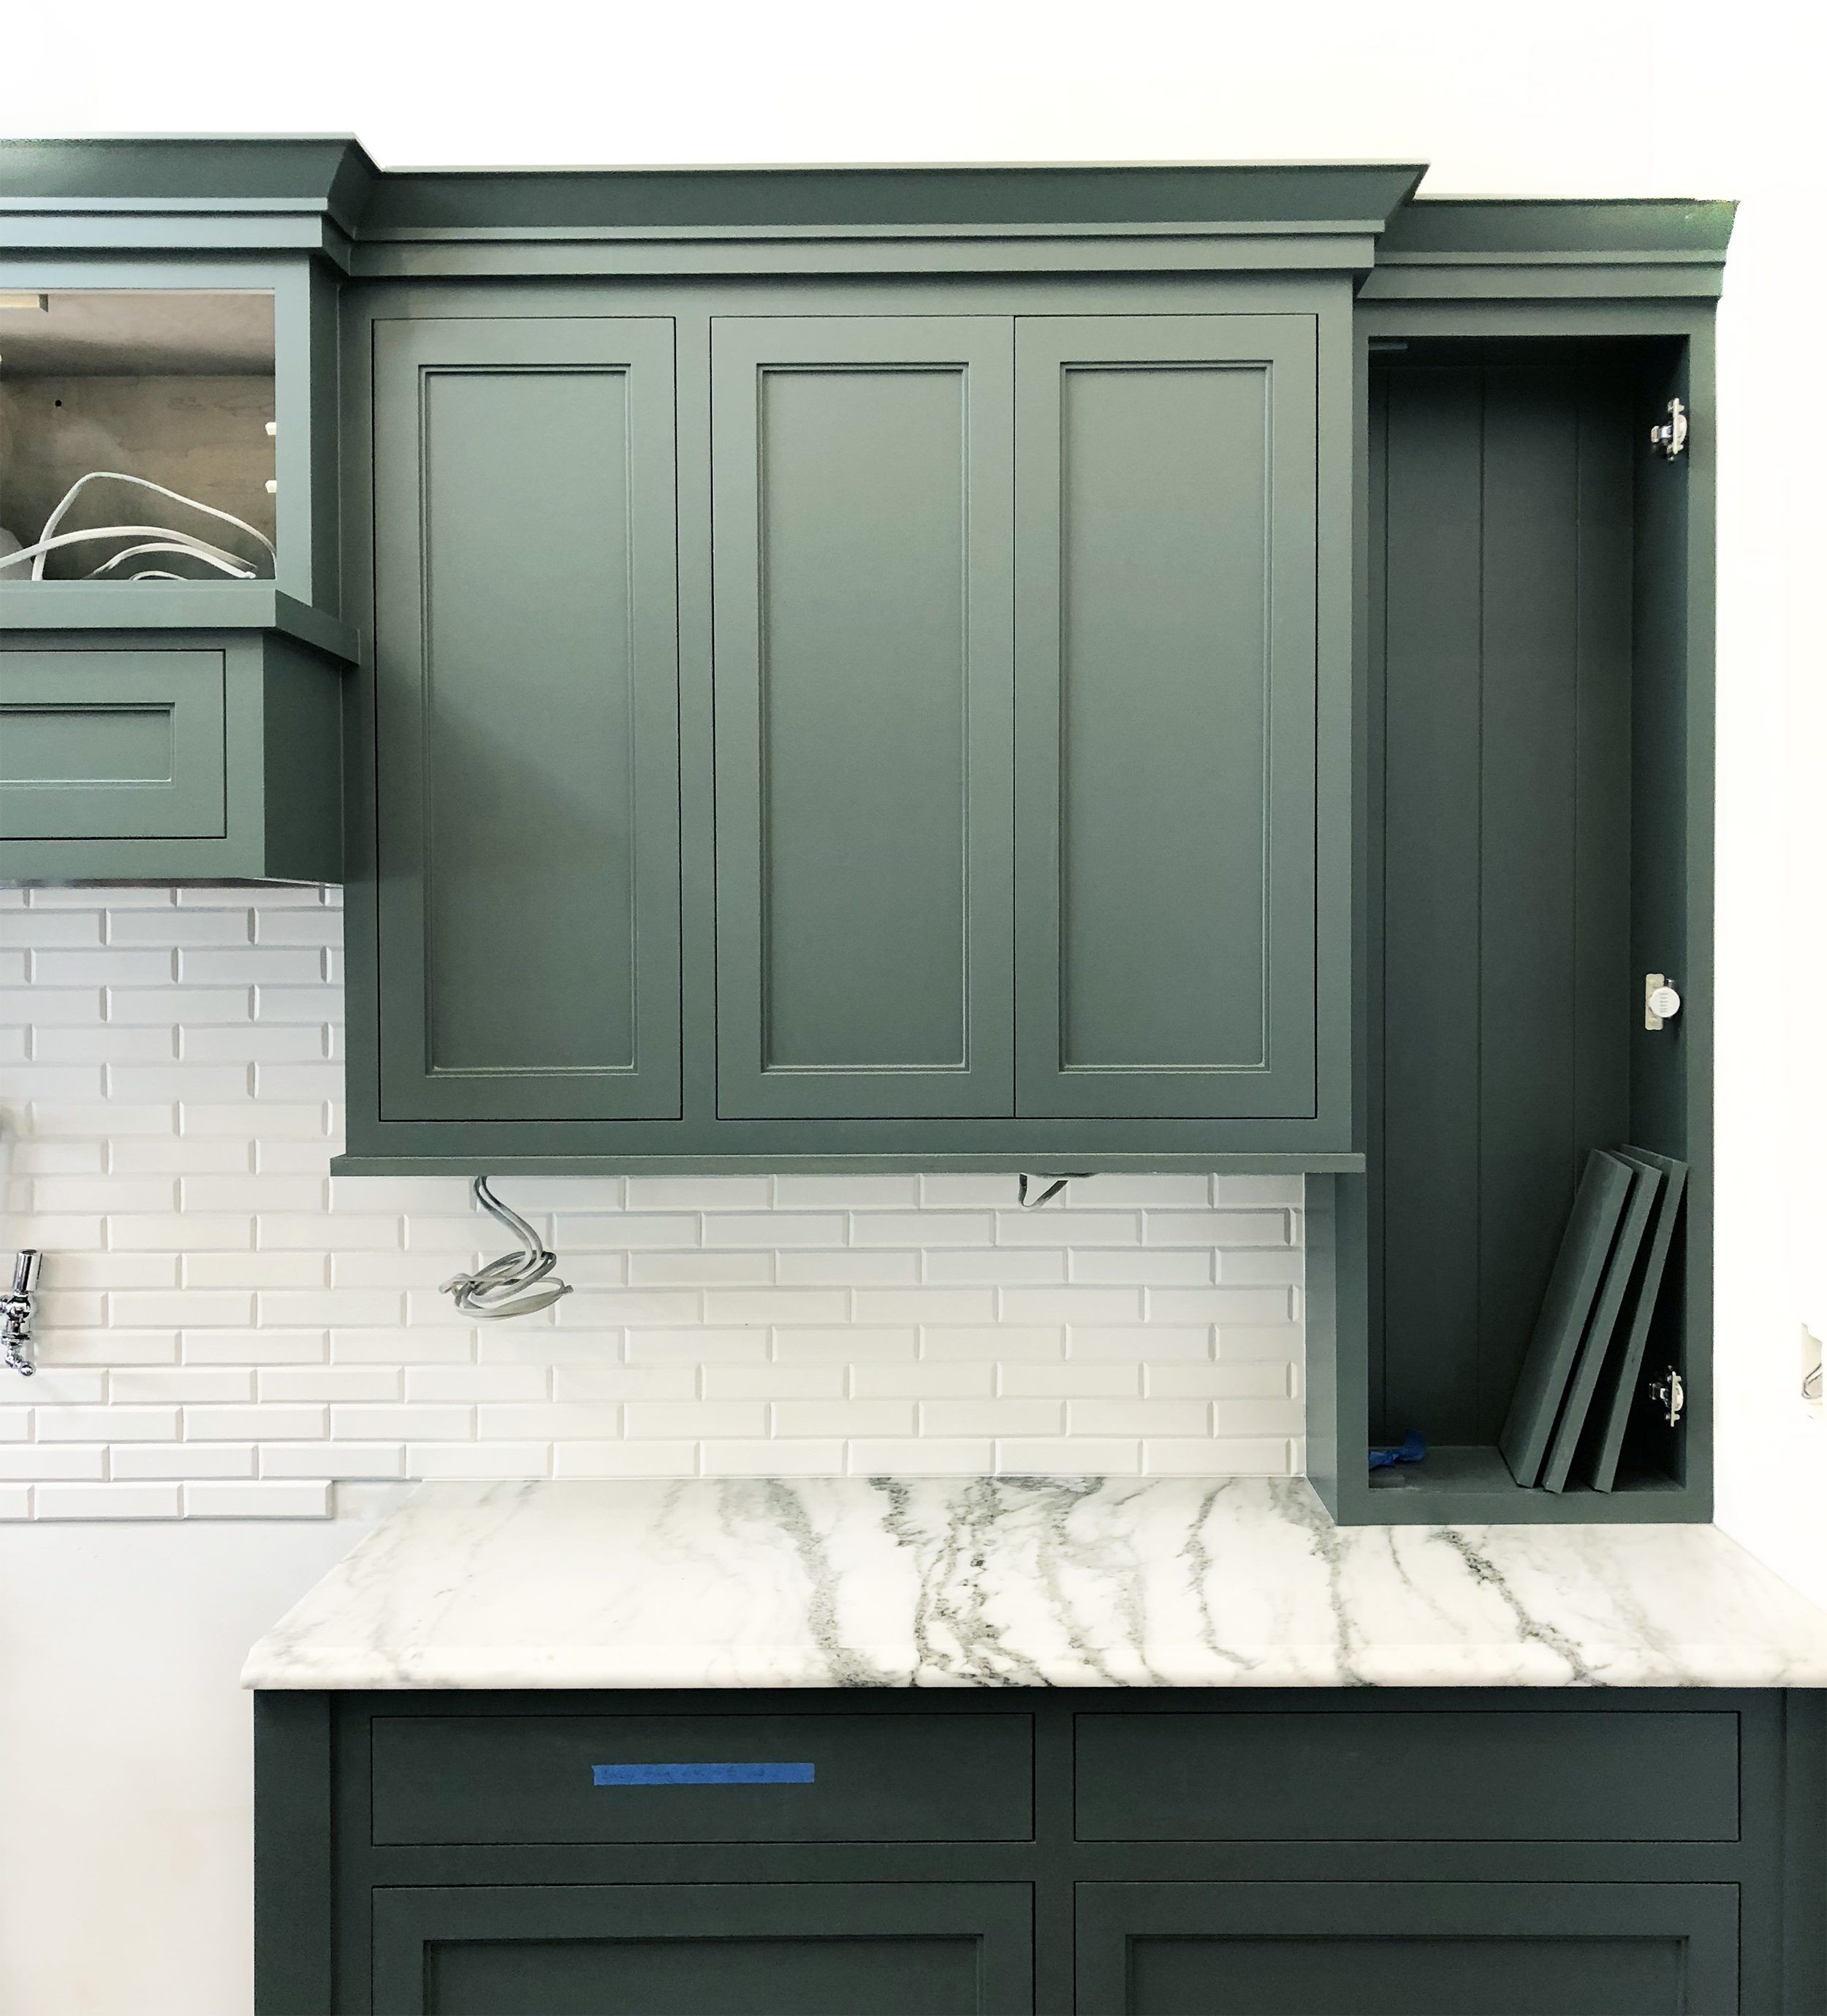 Pin By Sarah Moran On Home Is Where The Heart Is Green Kitchen Cabinets Farmhouse Kitchen Cabinets Refacing Kitchen Cabinets